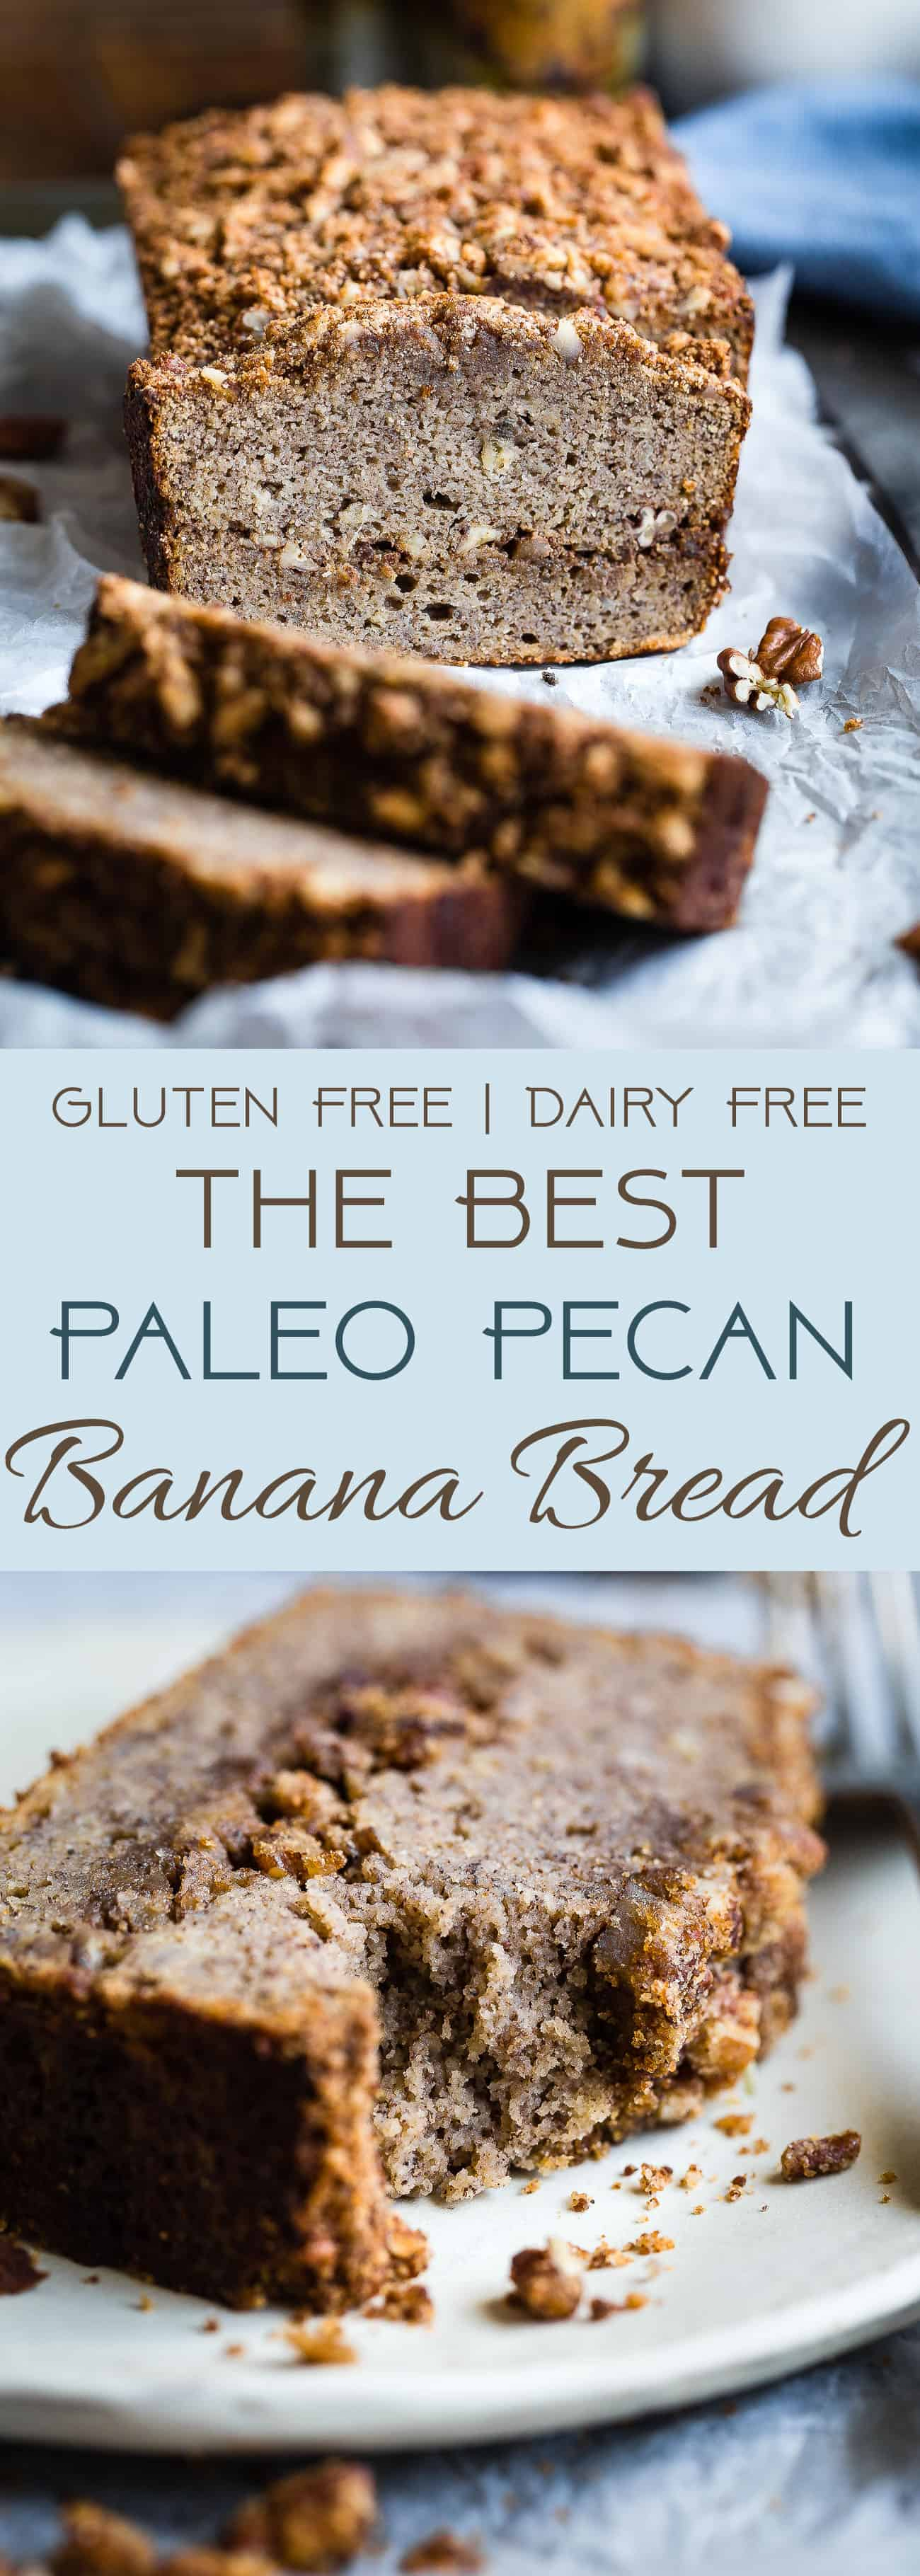 The Best Paleo Banana Bread with Pecan Streusel - This easy Paleo Coconut Flour Banana Bread is gluten/grain/dairy/refined sugar free but perfectly moist and sweet! The pecan topping MAKES it so addicting and you'll never know it's healthy! | Foodfaithfitness.com | @FoodFaithFit